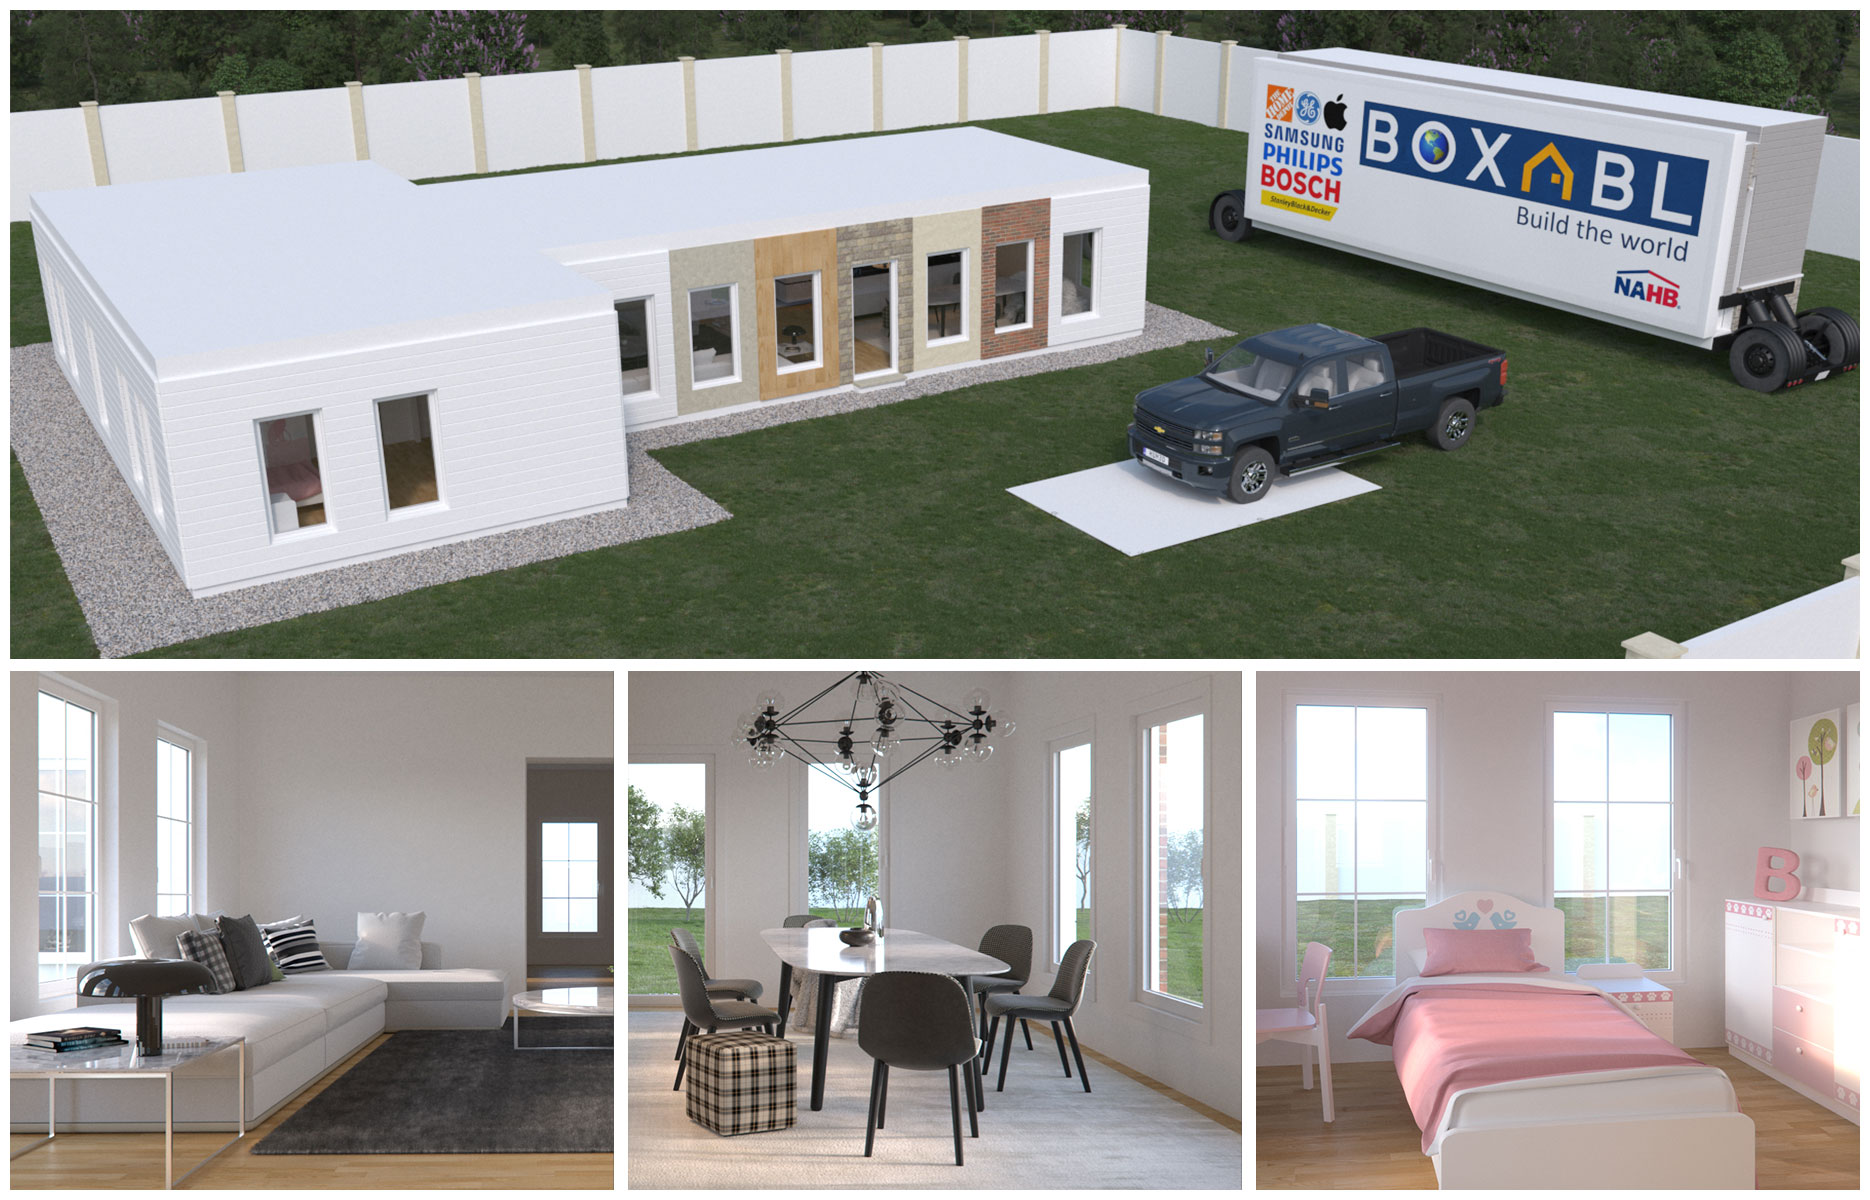 Boxabl Prefab Modular Homes Hopes to Reinvent the Home Construction Industry